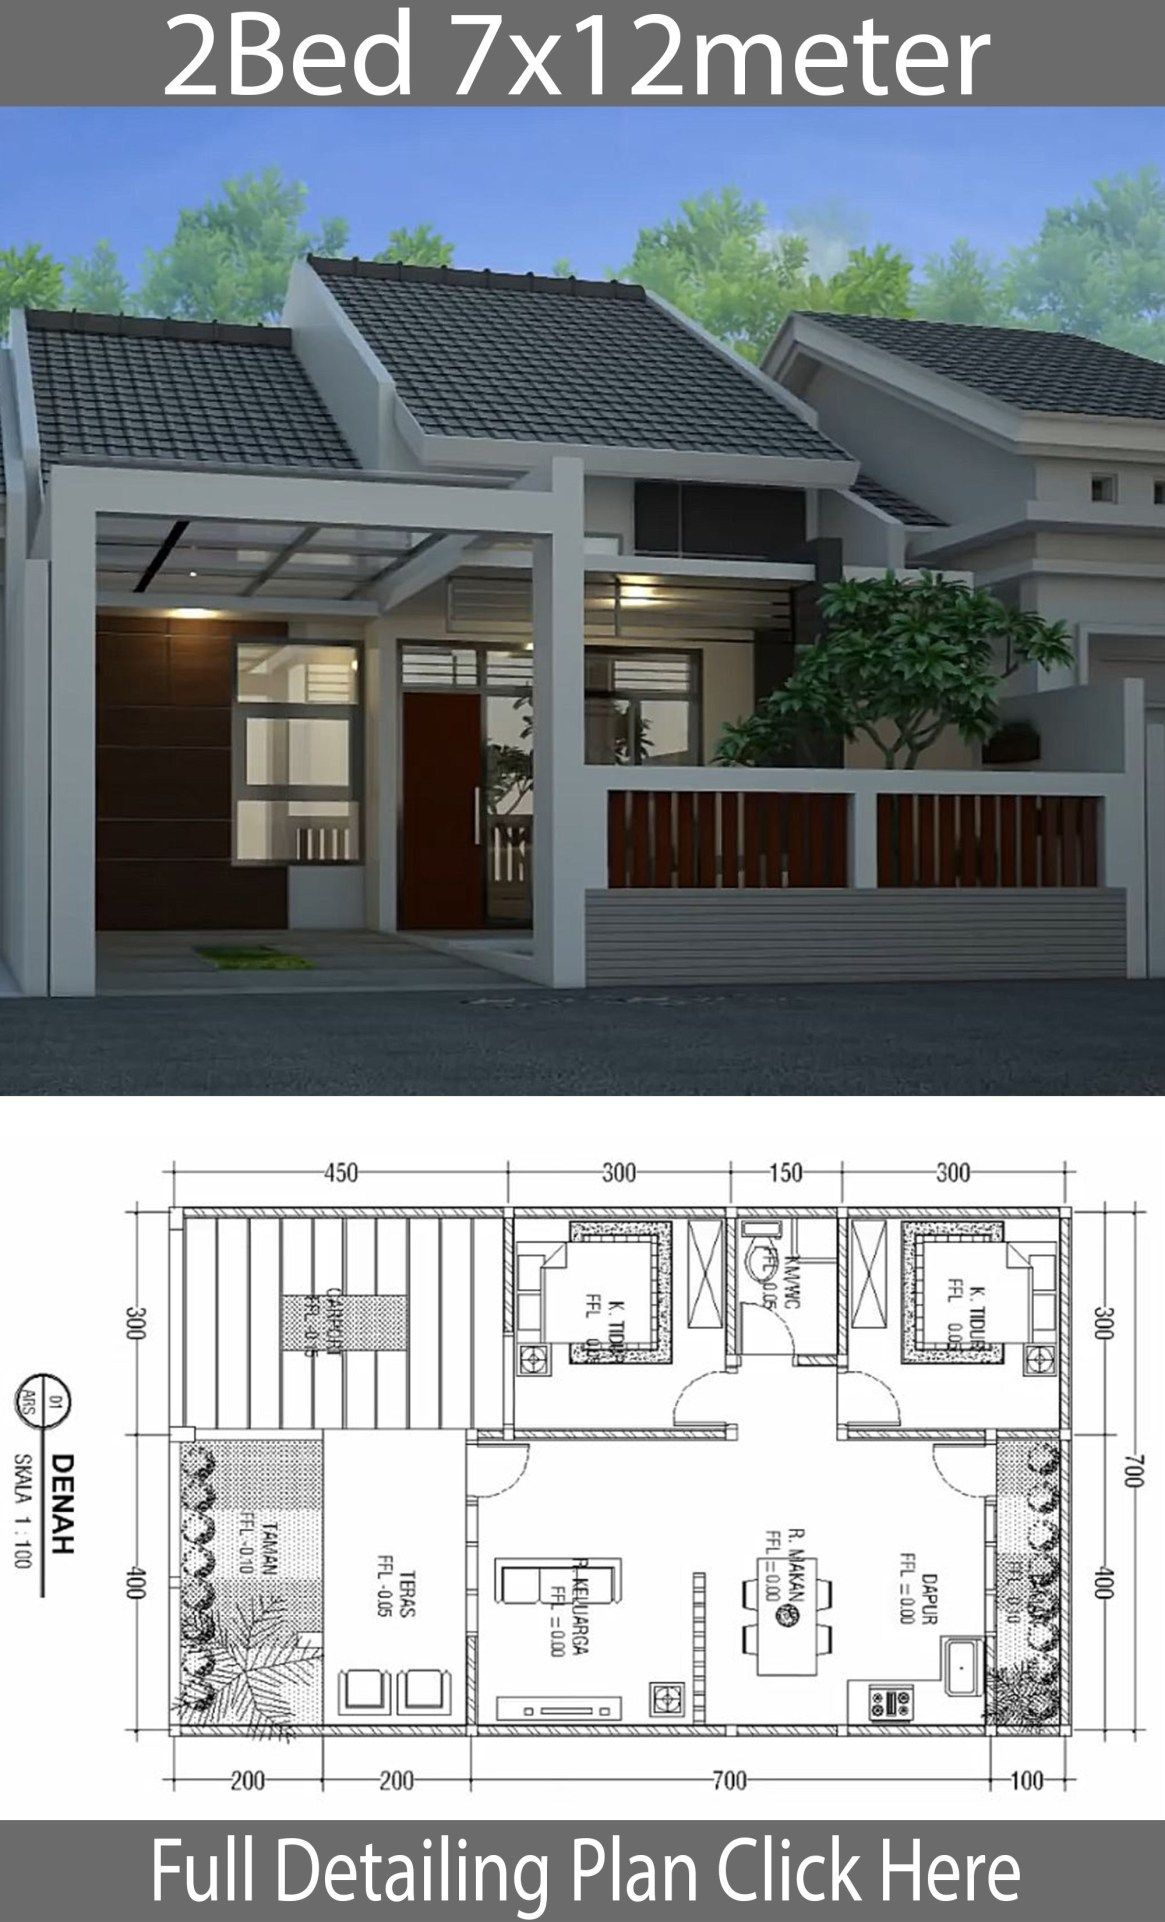 Minimalist Floor Design One Floor House 7x12m Home Design With Plansearch Bungalowhousede Modern House Design Minimalist House Design Home Design Floor Plans